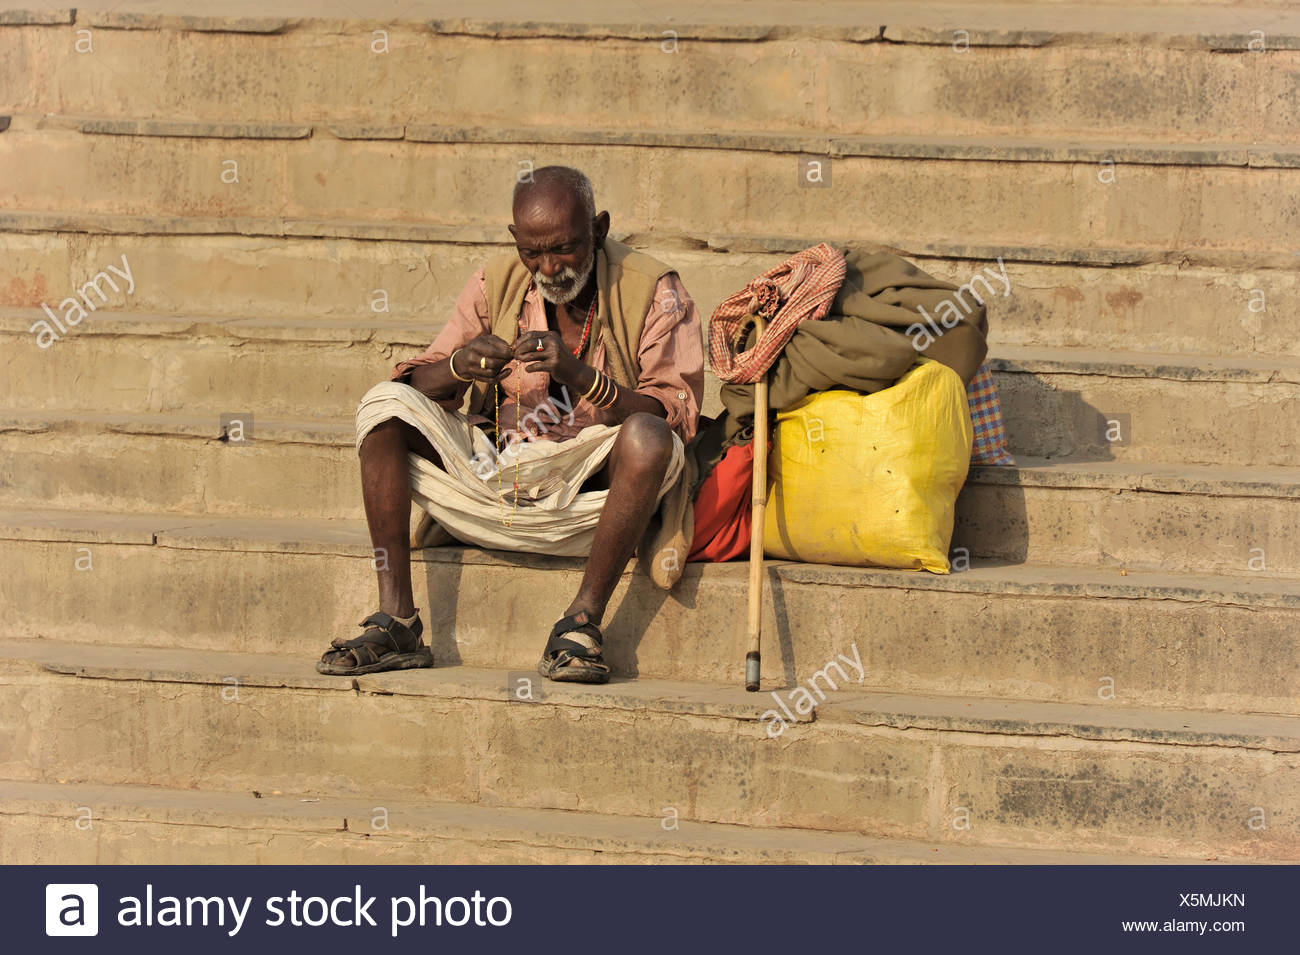 Creditors on the ghats or steps on the banks of the Ganges in Varanasi, Benares, Uttar Pradesh, India, South Asia - Stock Image